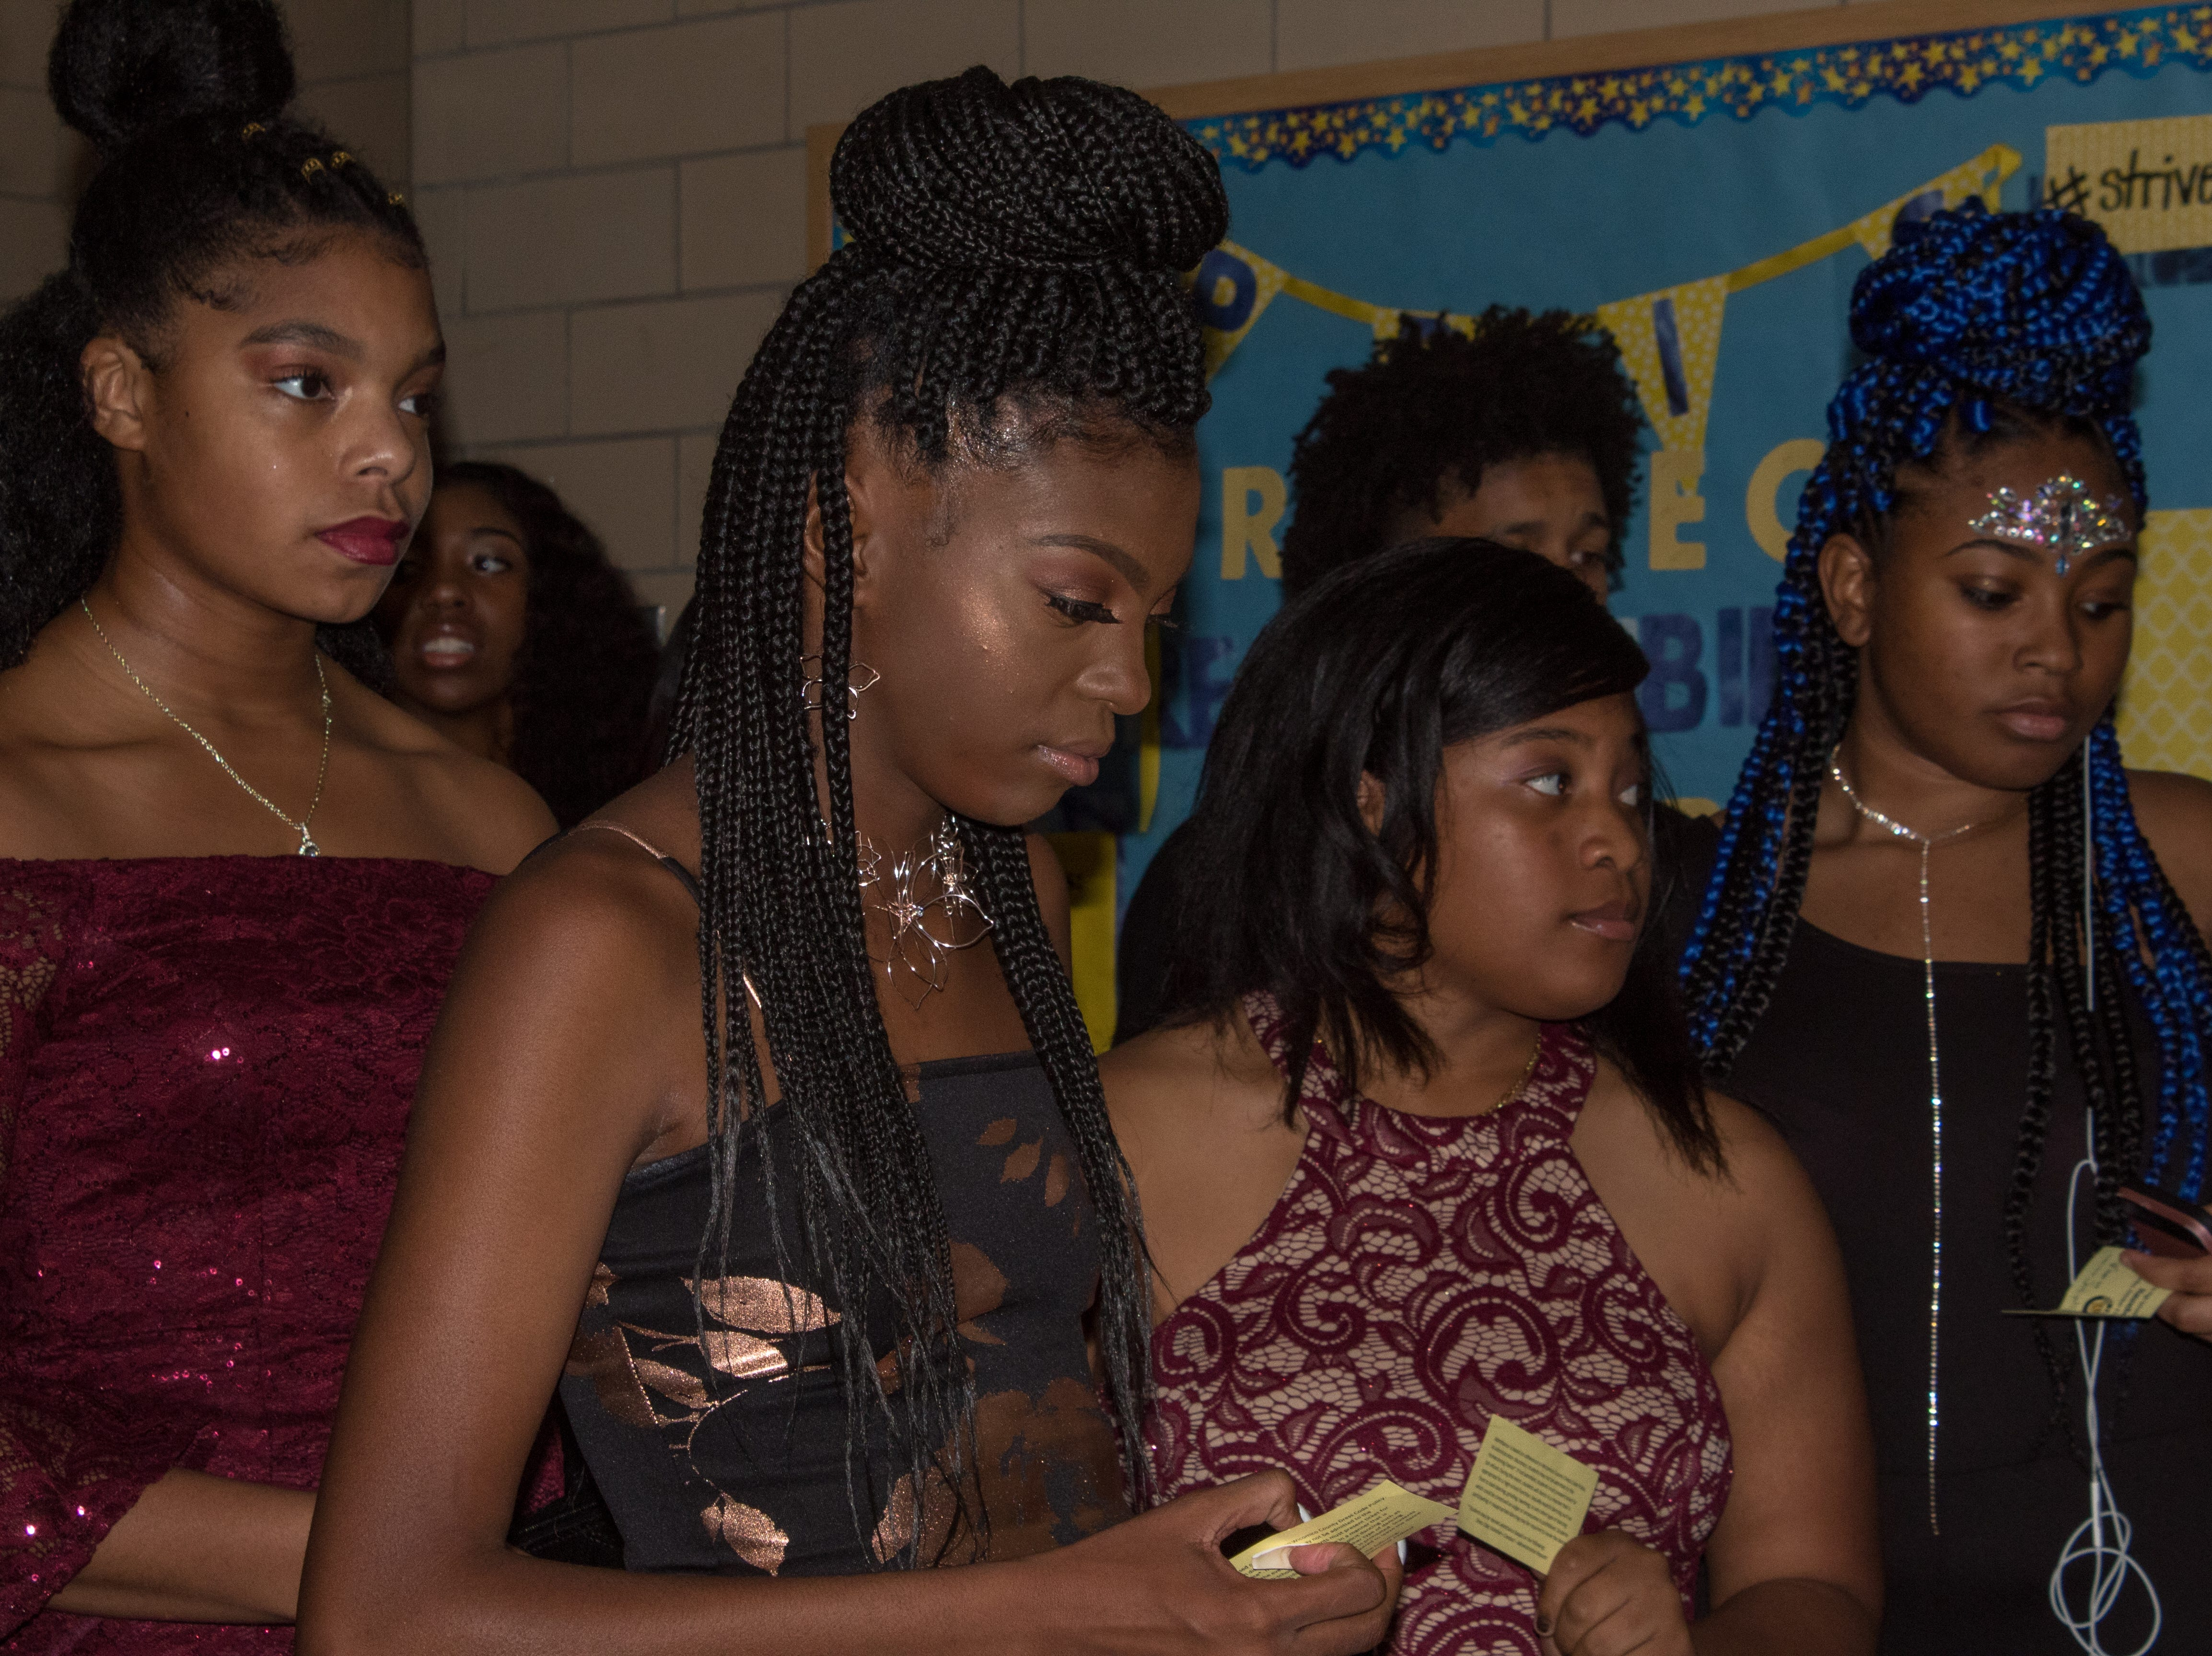 Wicomico High School held its Homecoming Dance Saturday, Oct. 27. The theme was Blue and Gold. Tyairra Sheppard and Khalil Evans were crowned the Homecoming Queen and King.